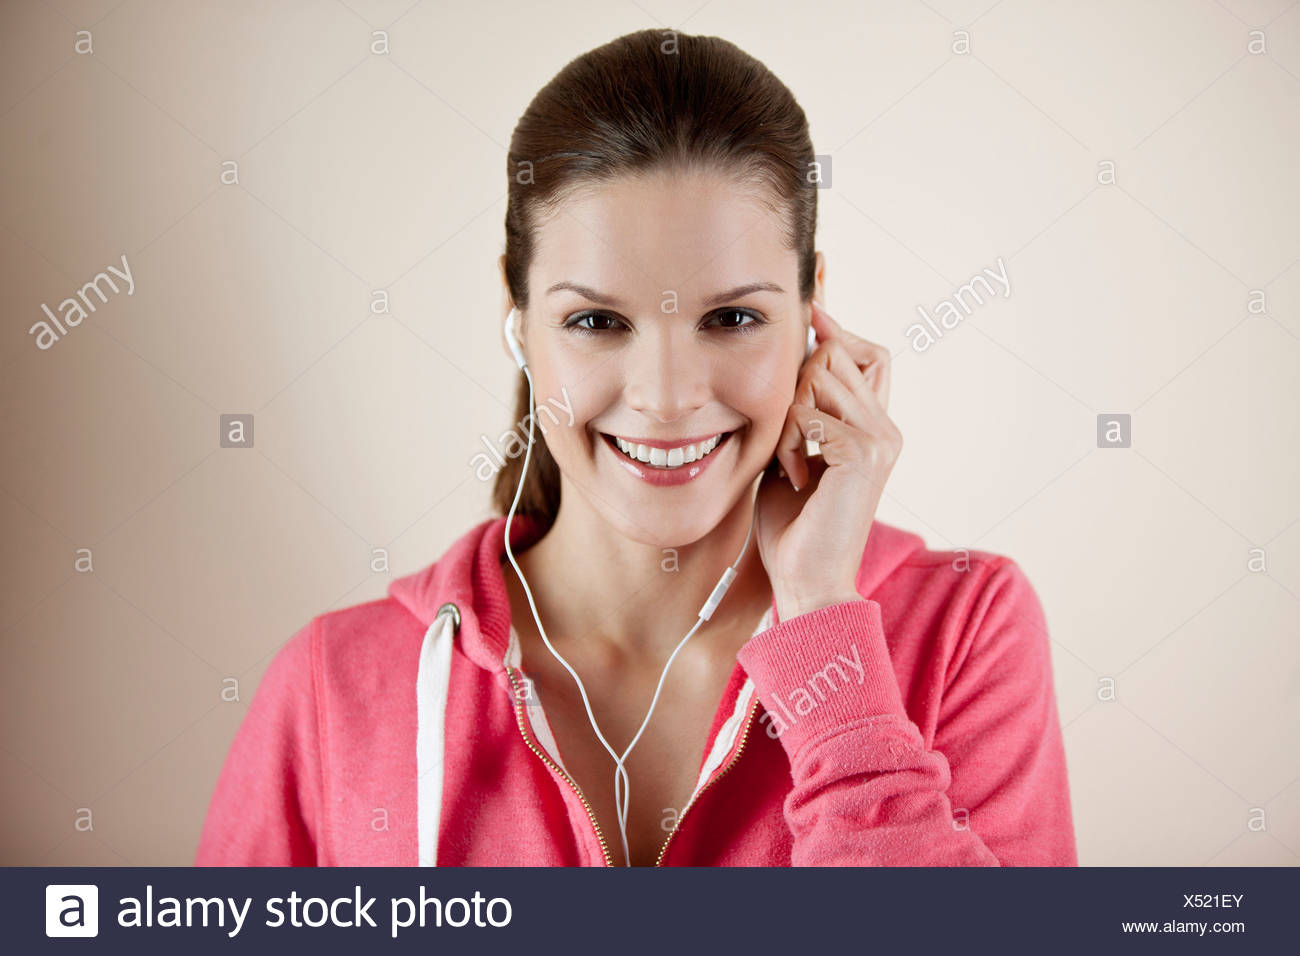 A young woman wearing fitness clothing and earphones, listening to music Stock Photo